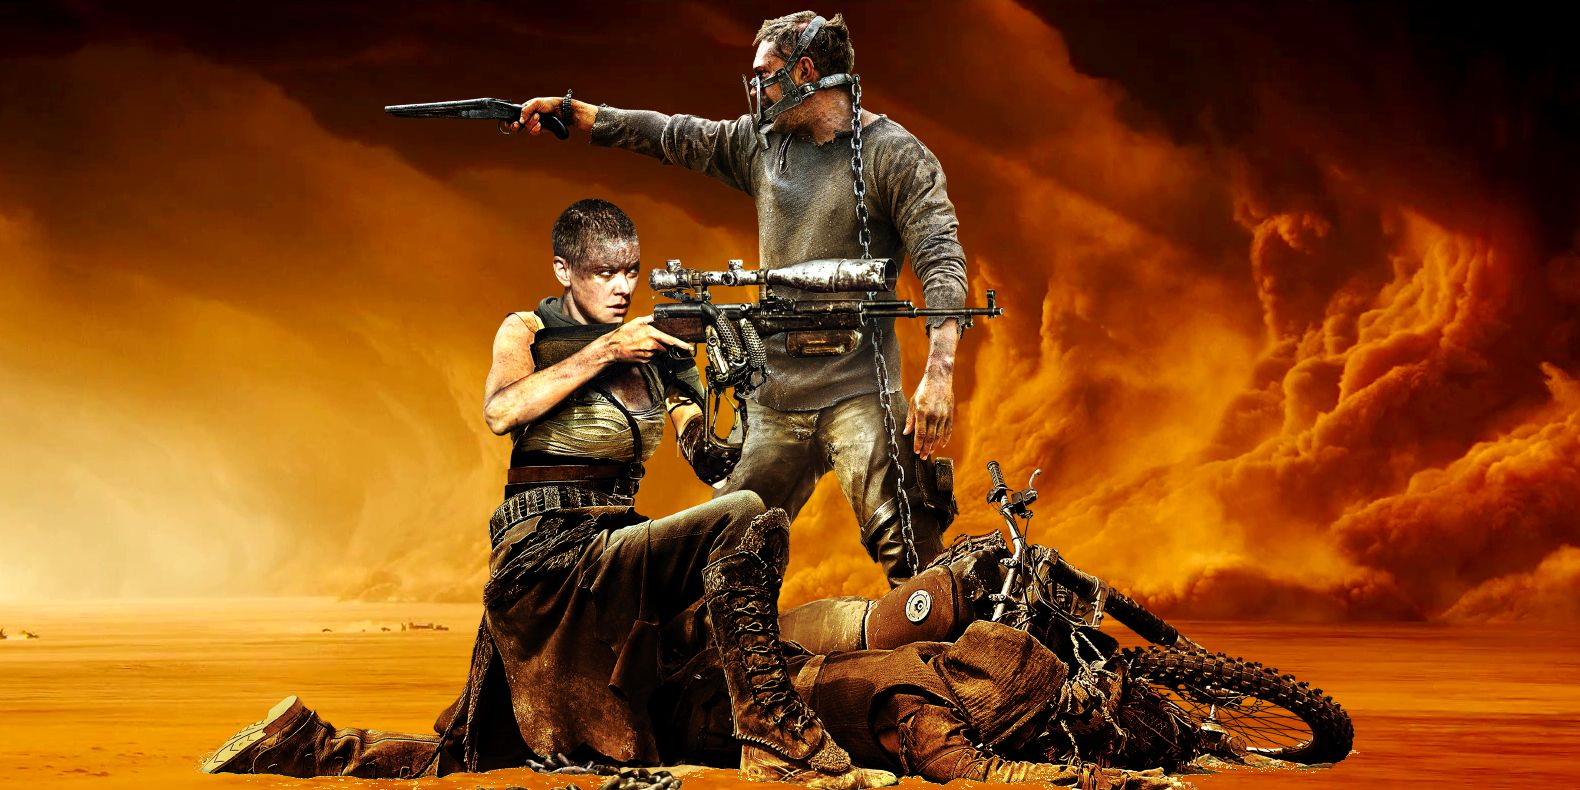 Mad Max What Really Happened To The World In The Movies